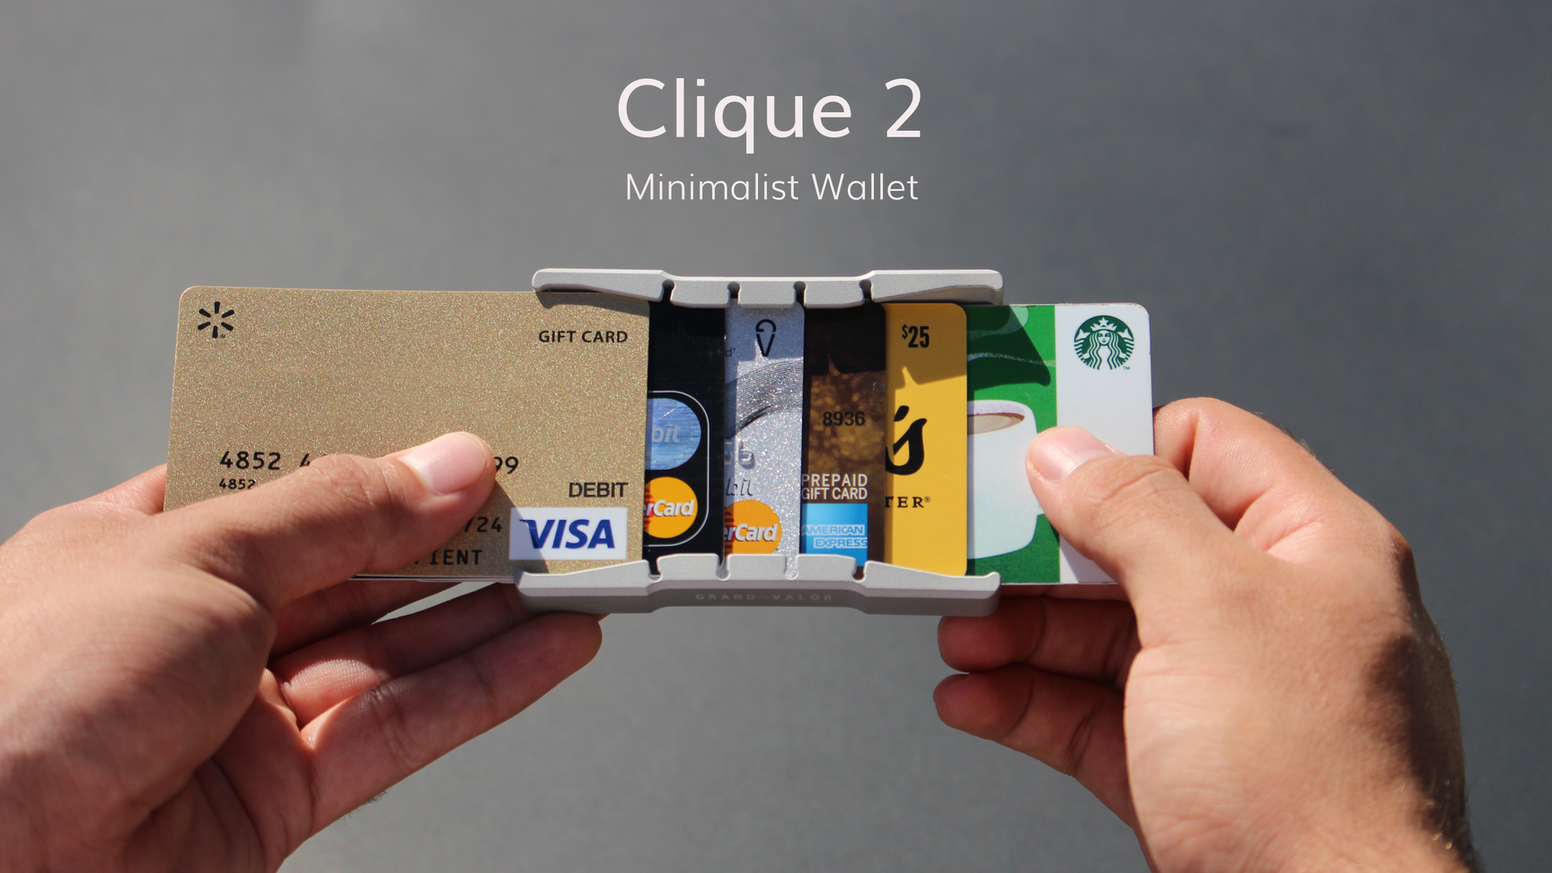 The Clique 2 stores your cards unlike any other wallet. Beautifully engineered with superior functionality.